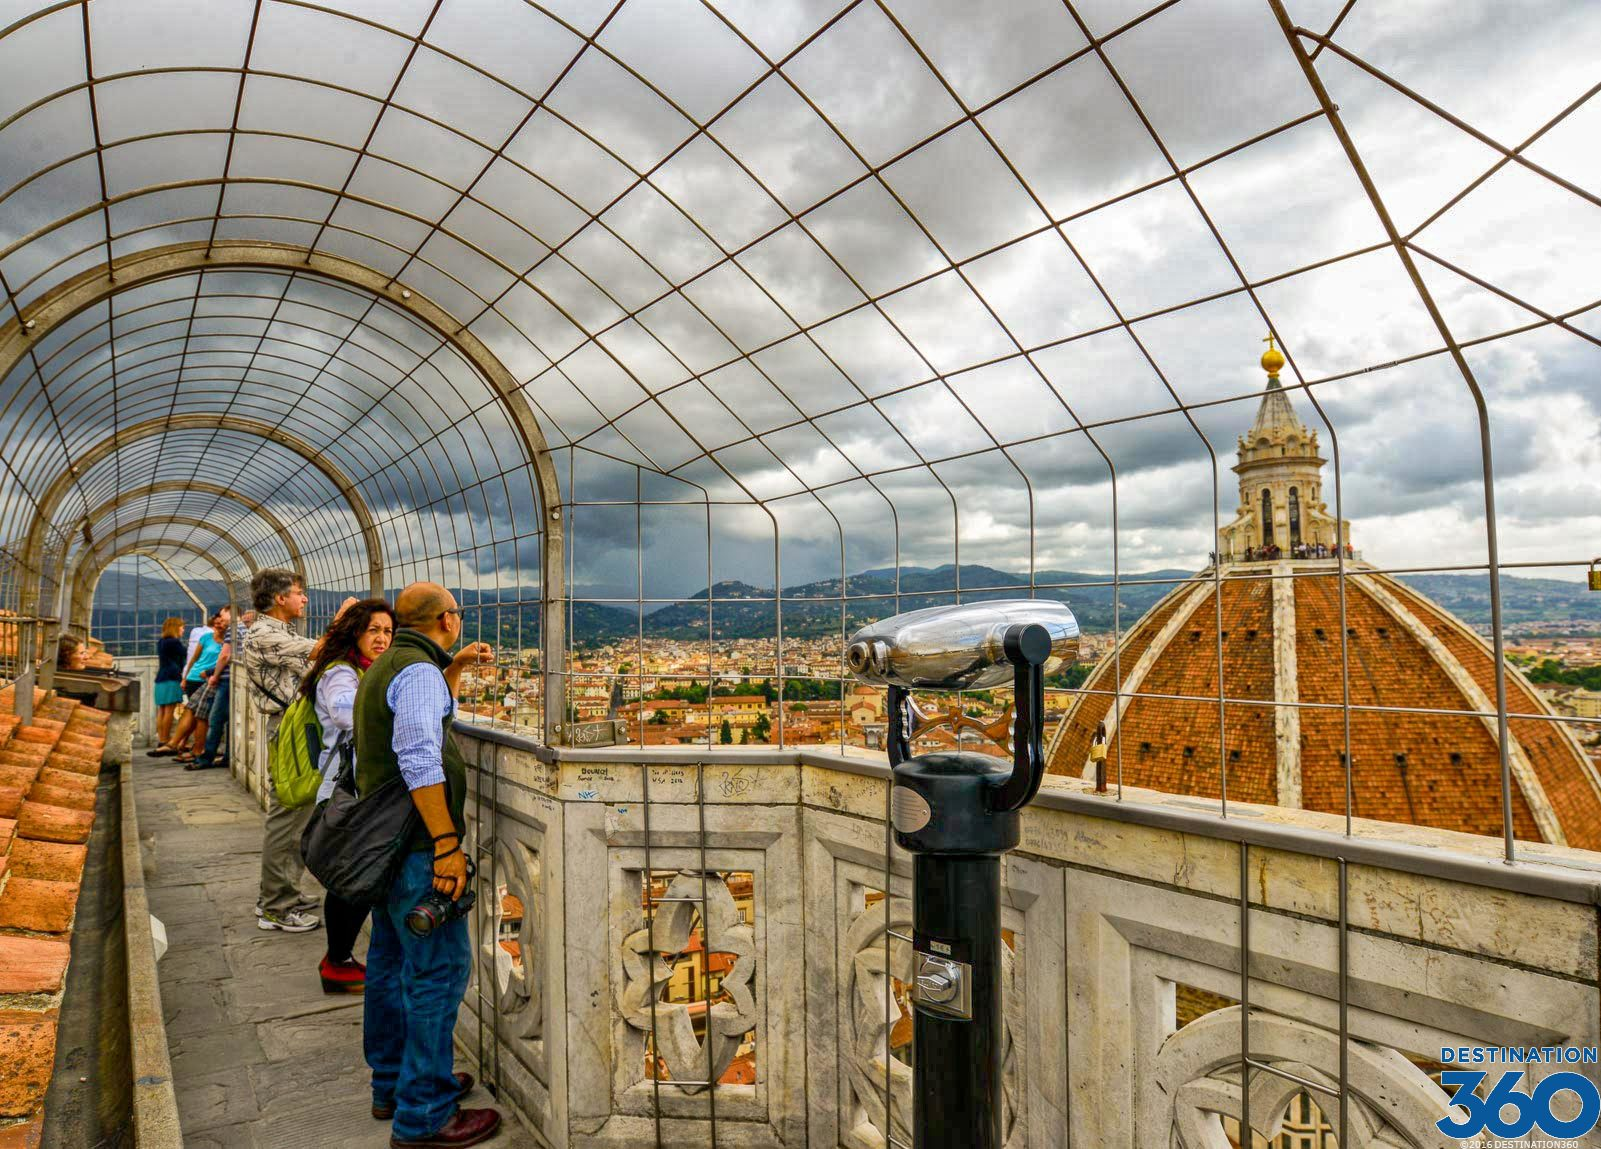 Italian Florence: Things To Do In Florence